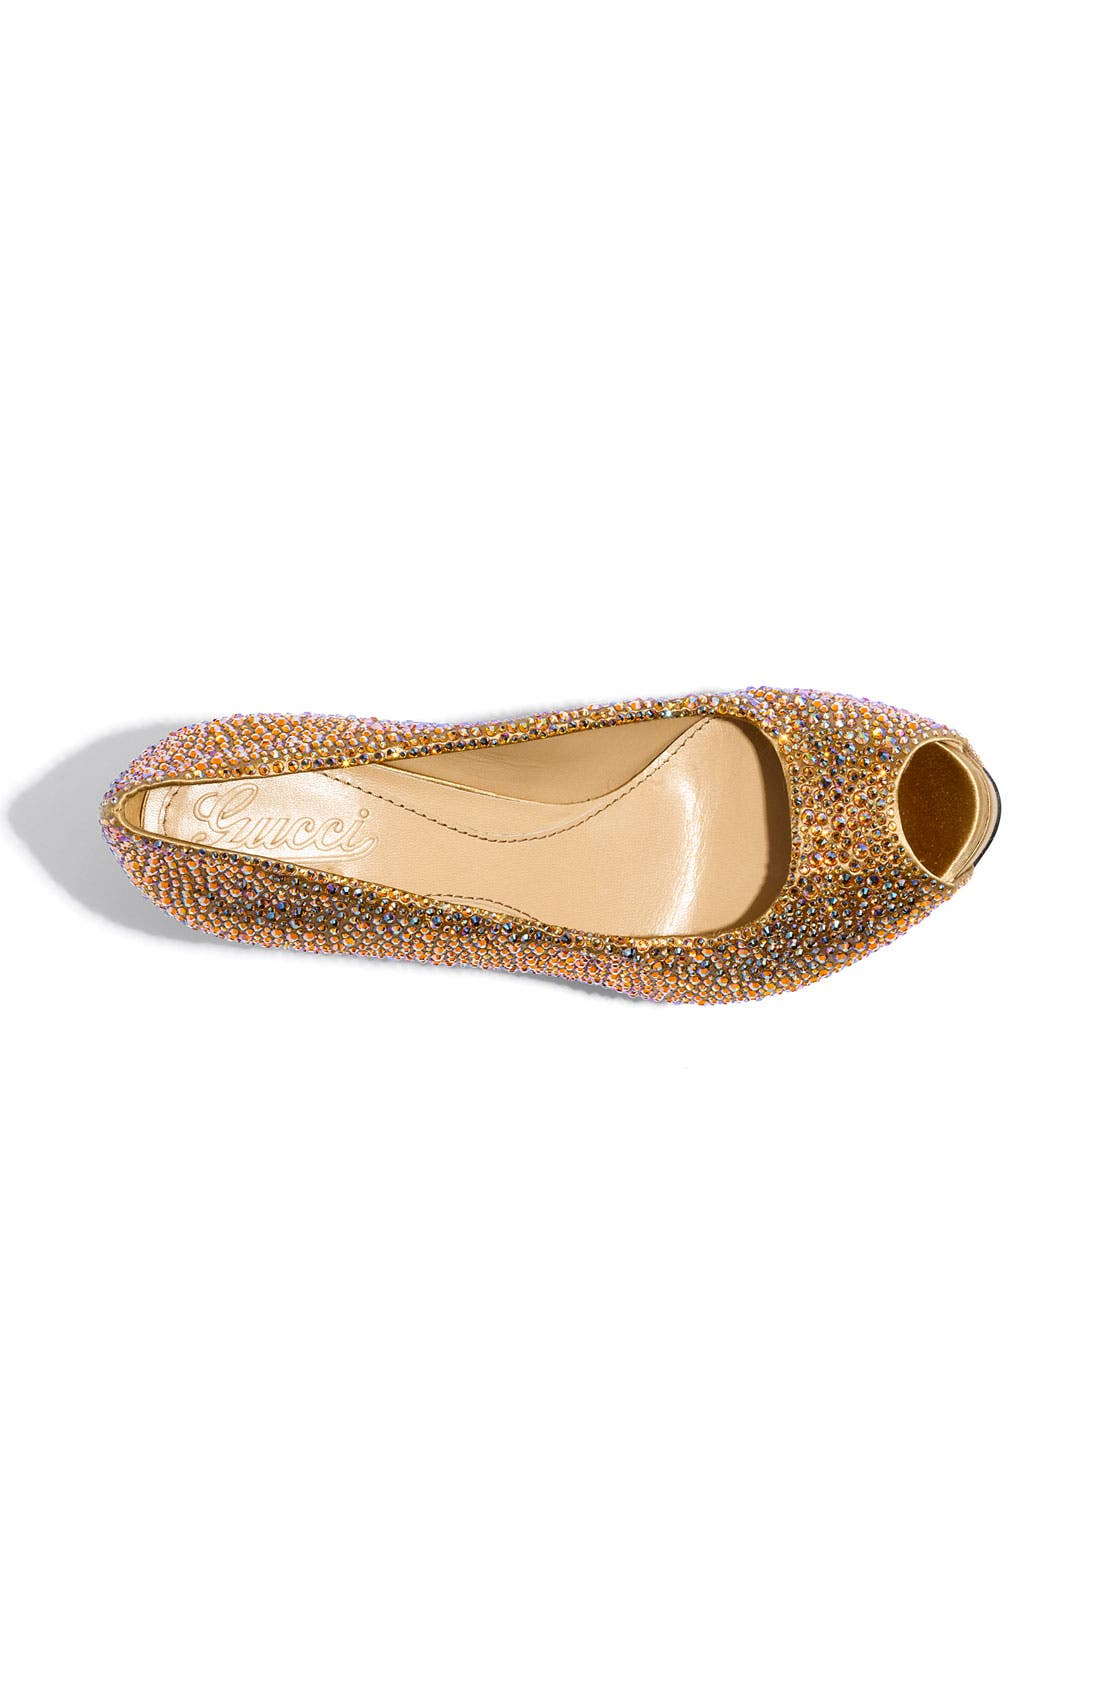 Alternate Image 3  - Gucci 'Sofia' Crystal Embellished Platform Pump